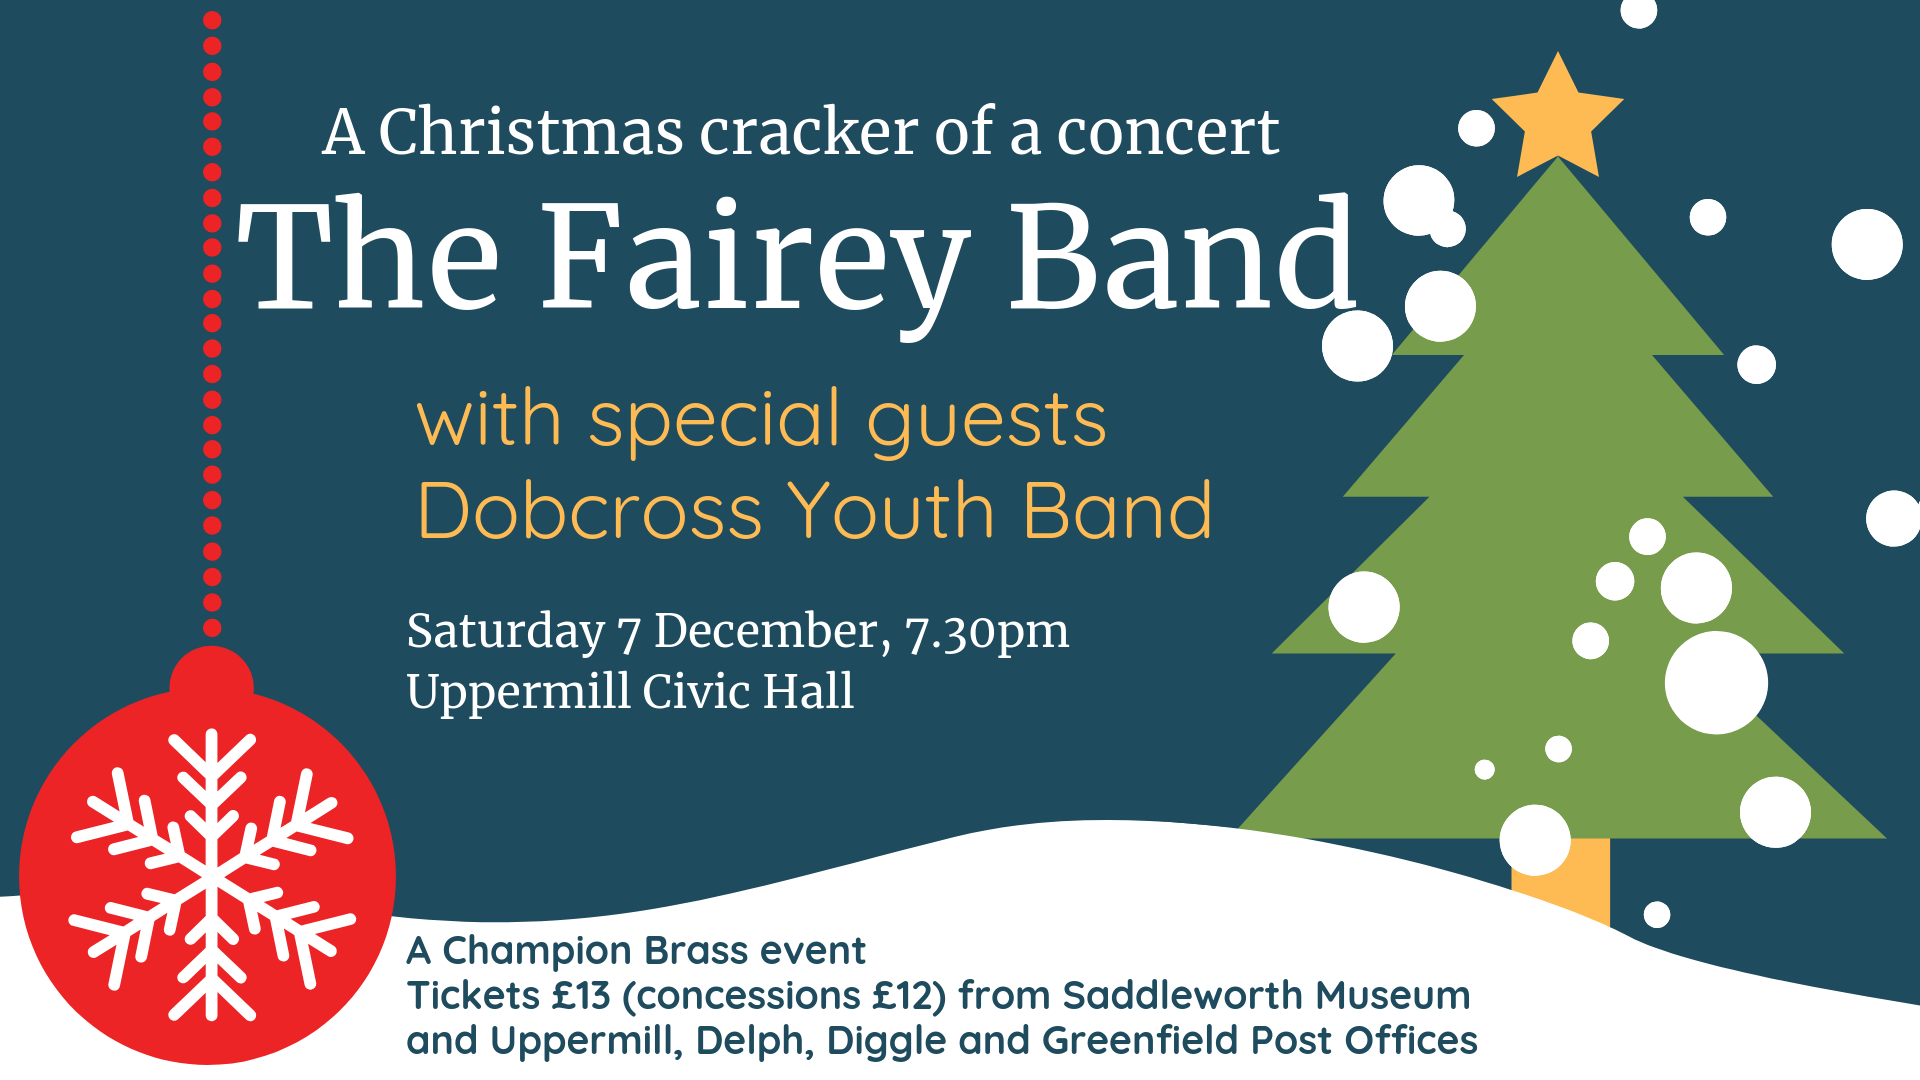 Christmas Cracker Png.Christmas Cracker With The Fairey Band Dobcross Youth Band